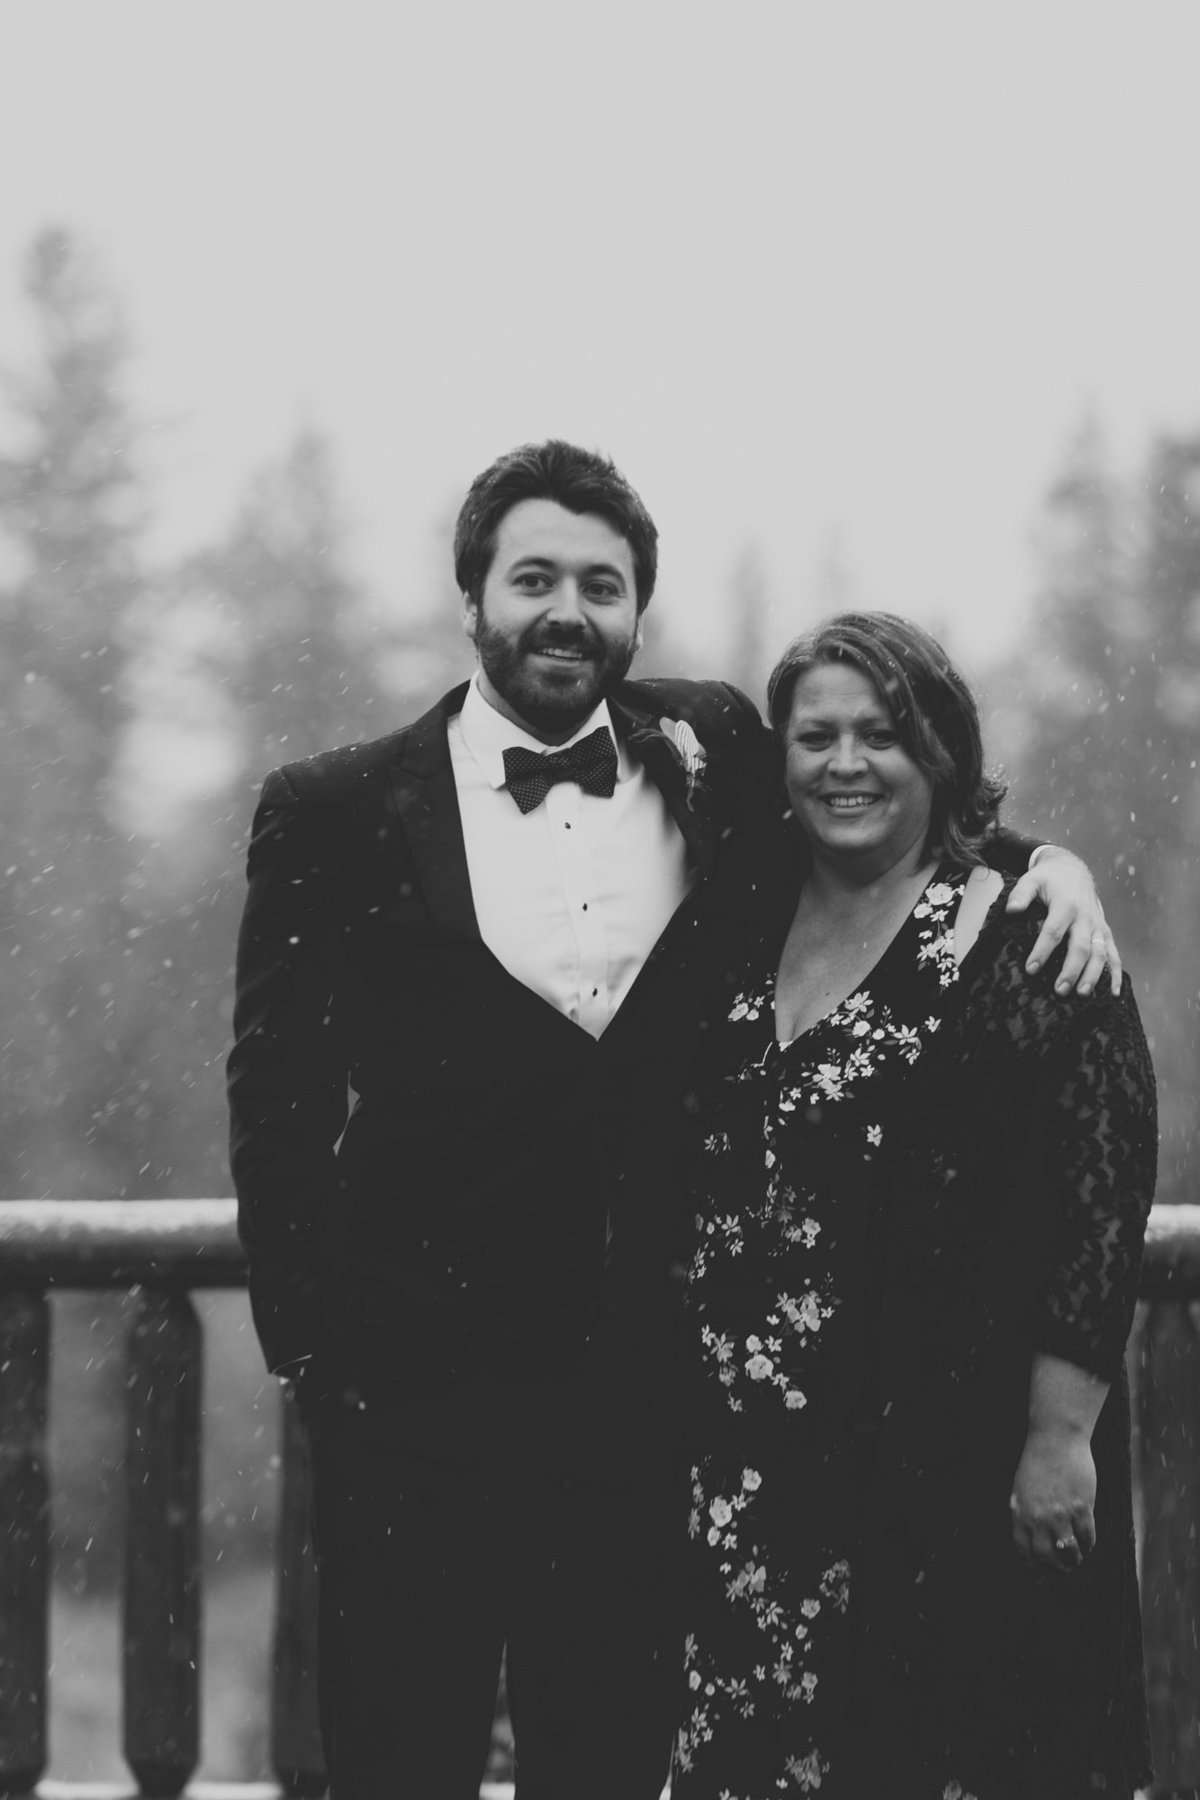 Jennifer_Mooney_Photography_Abbey_Stephen_Fall_Winter_Glacier_Park_Elopement-188